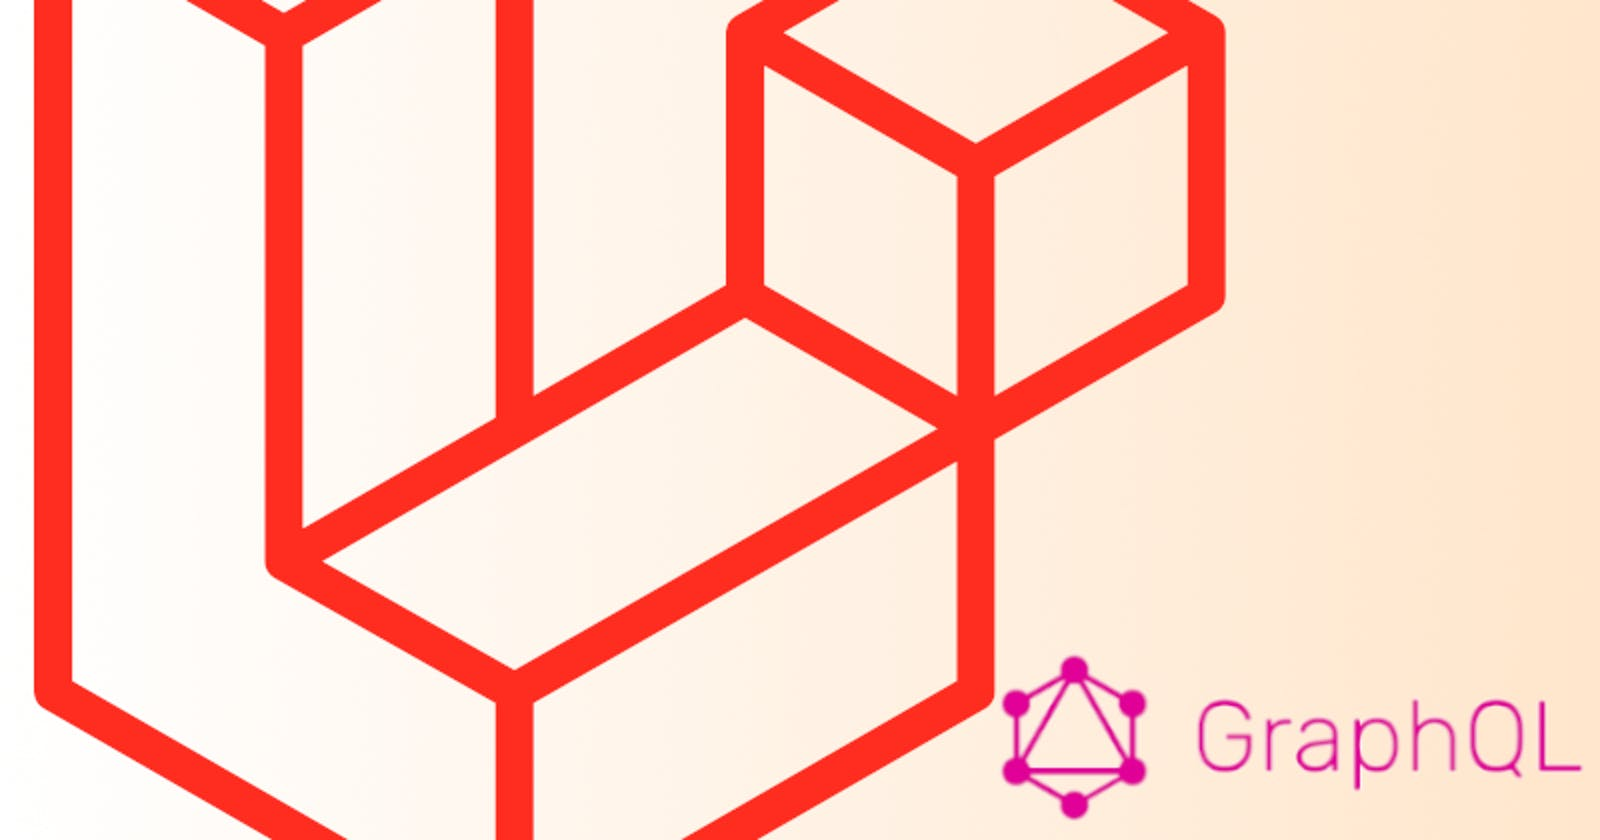 Forget REST. Here's How to Make a GraphQL API with Laravel